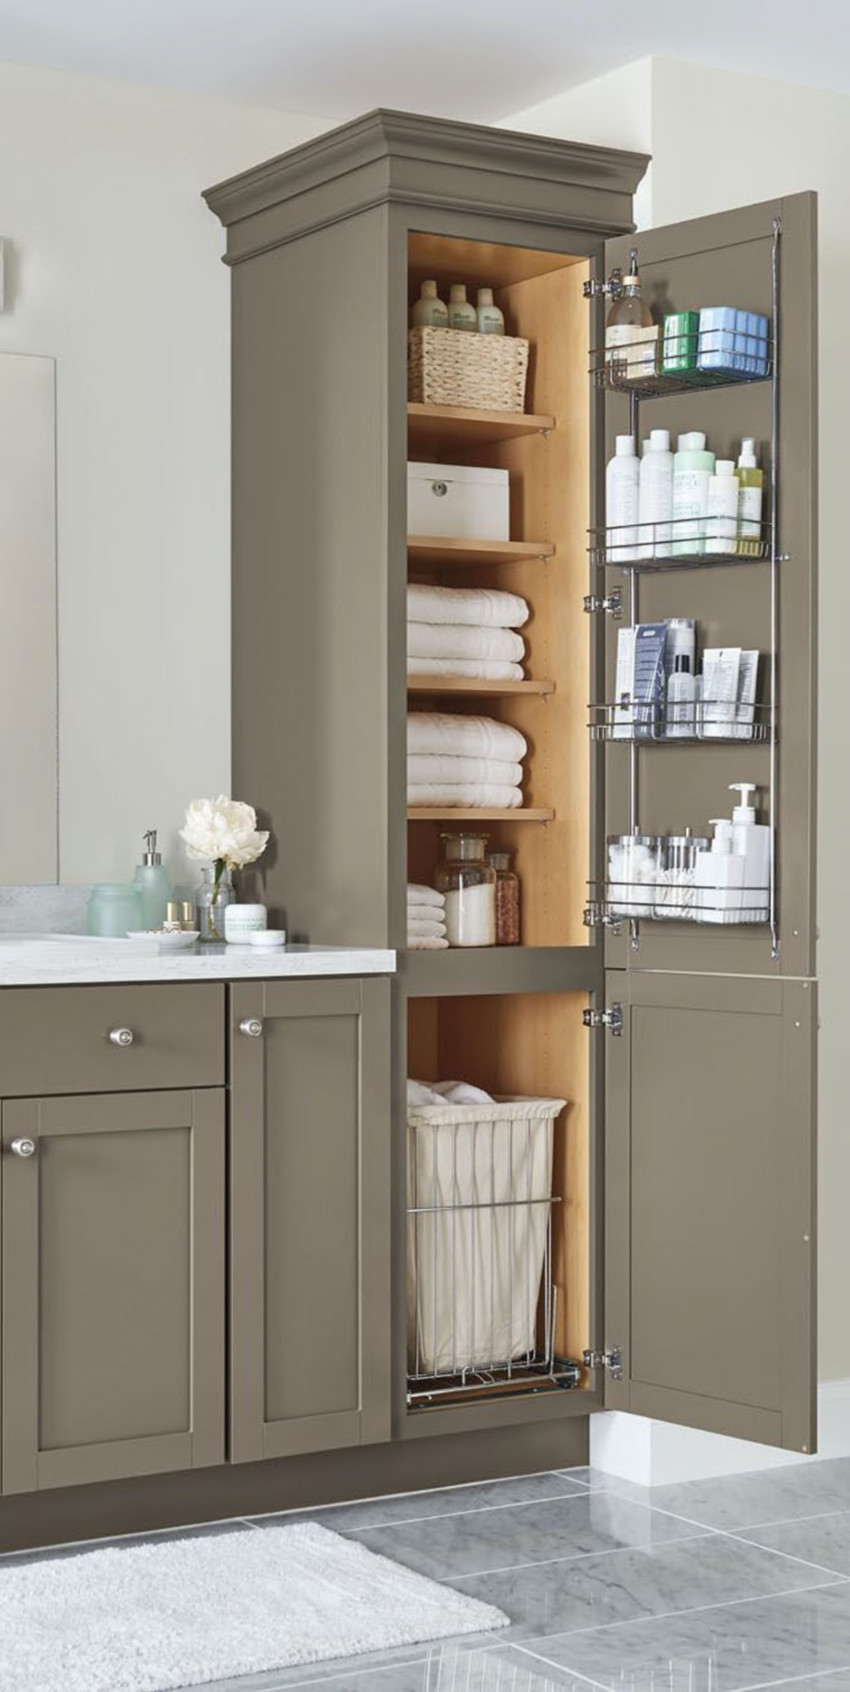 4 Custom Cabinet Ideas That Will Make Life Easier in 4